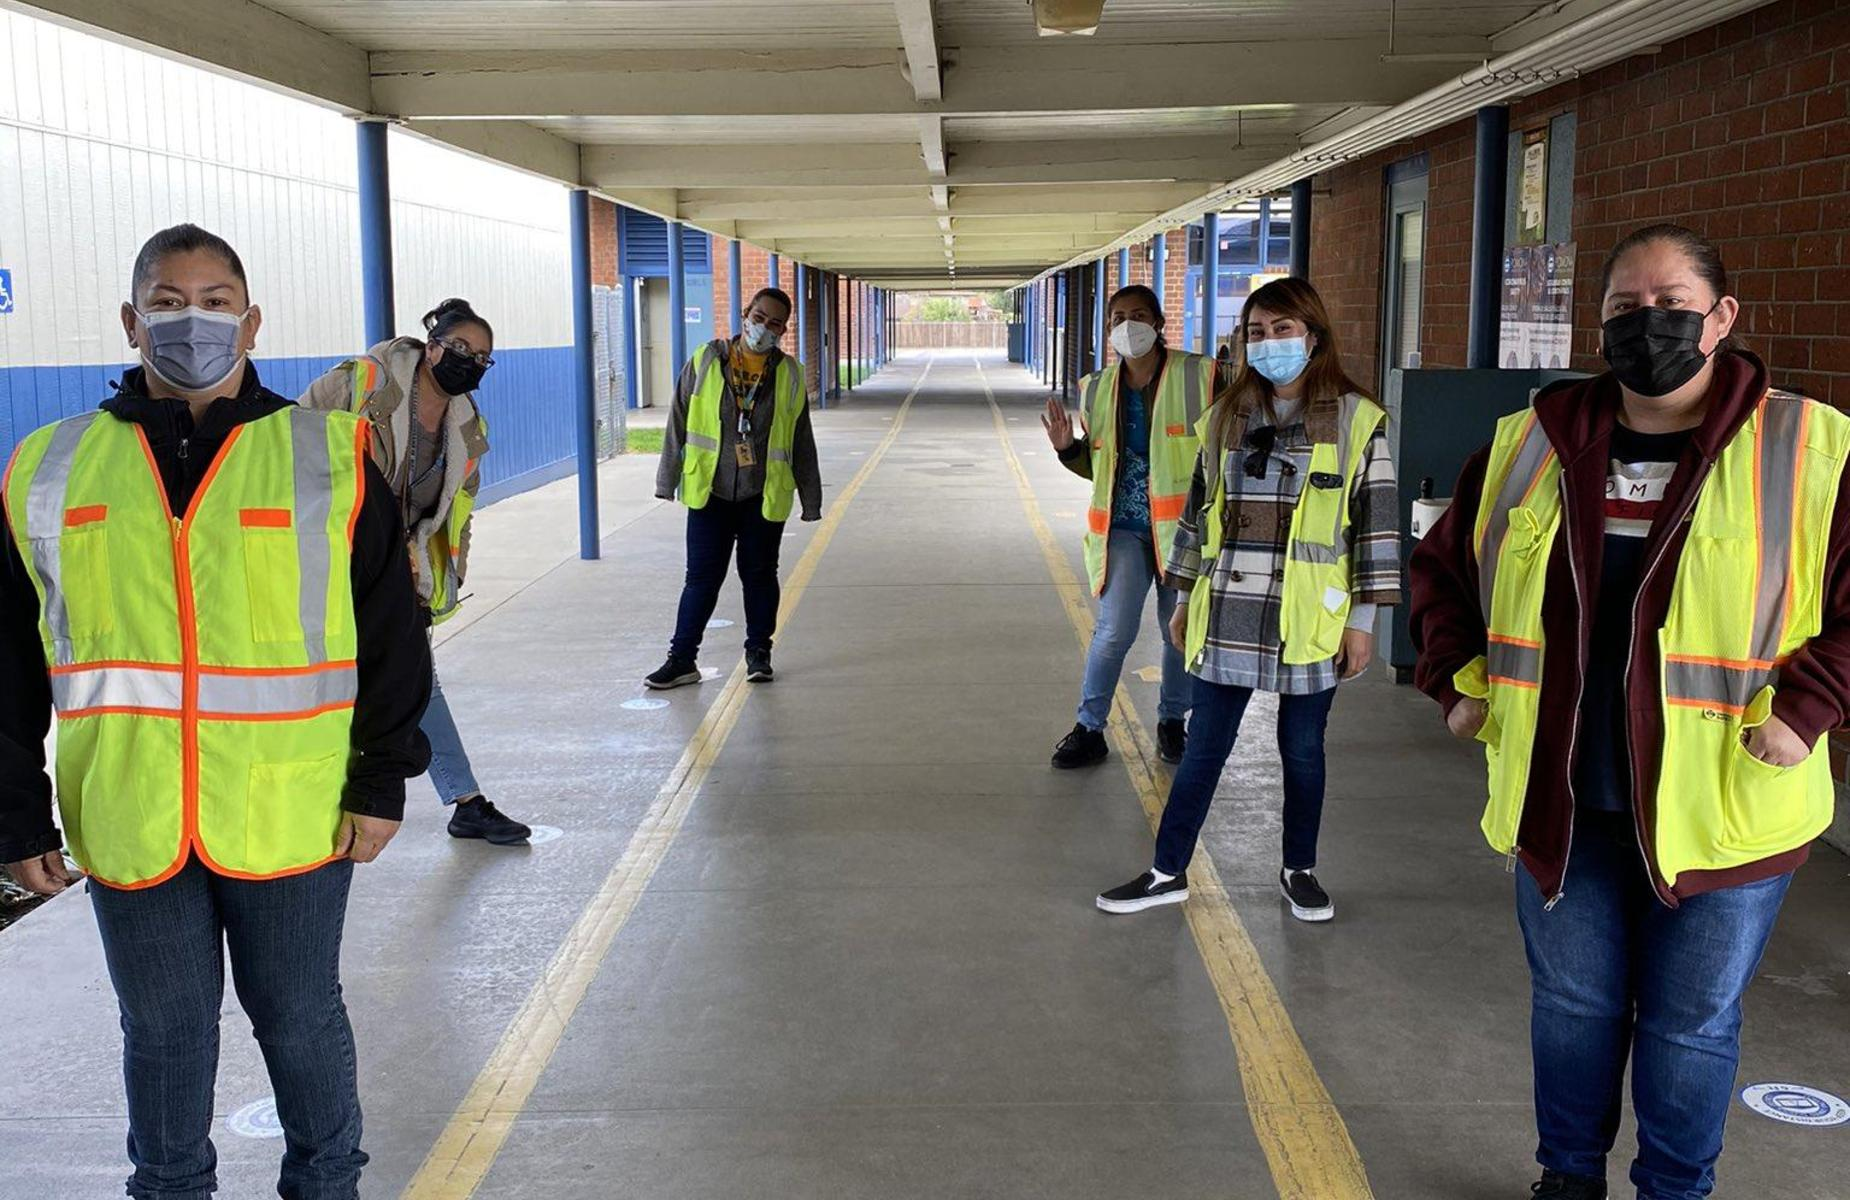 Arroyo Panthers are back in school! Campus Supervisors are making sure our Panthers practice safety and are prepared by distributing PPE. We appreciate our frontline heroes! @arroyoPUSD #proud2bePUSD #CSEA #safetyfirst https://arroyo.pusd.org/apps/pages/signage